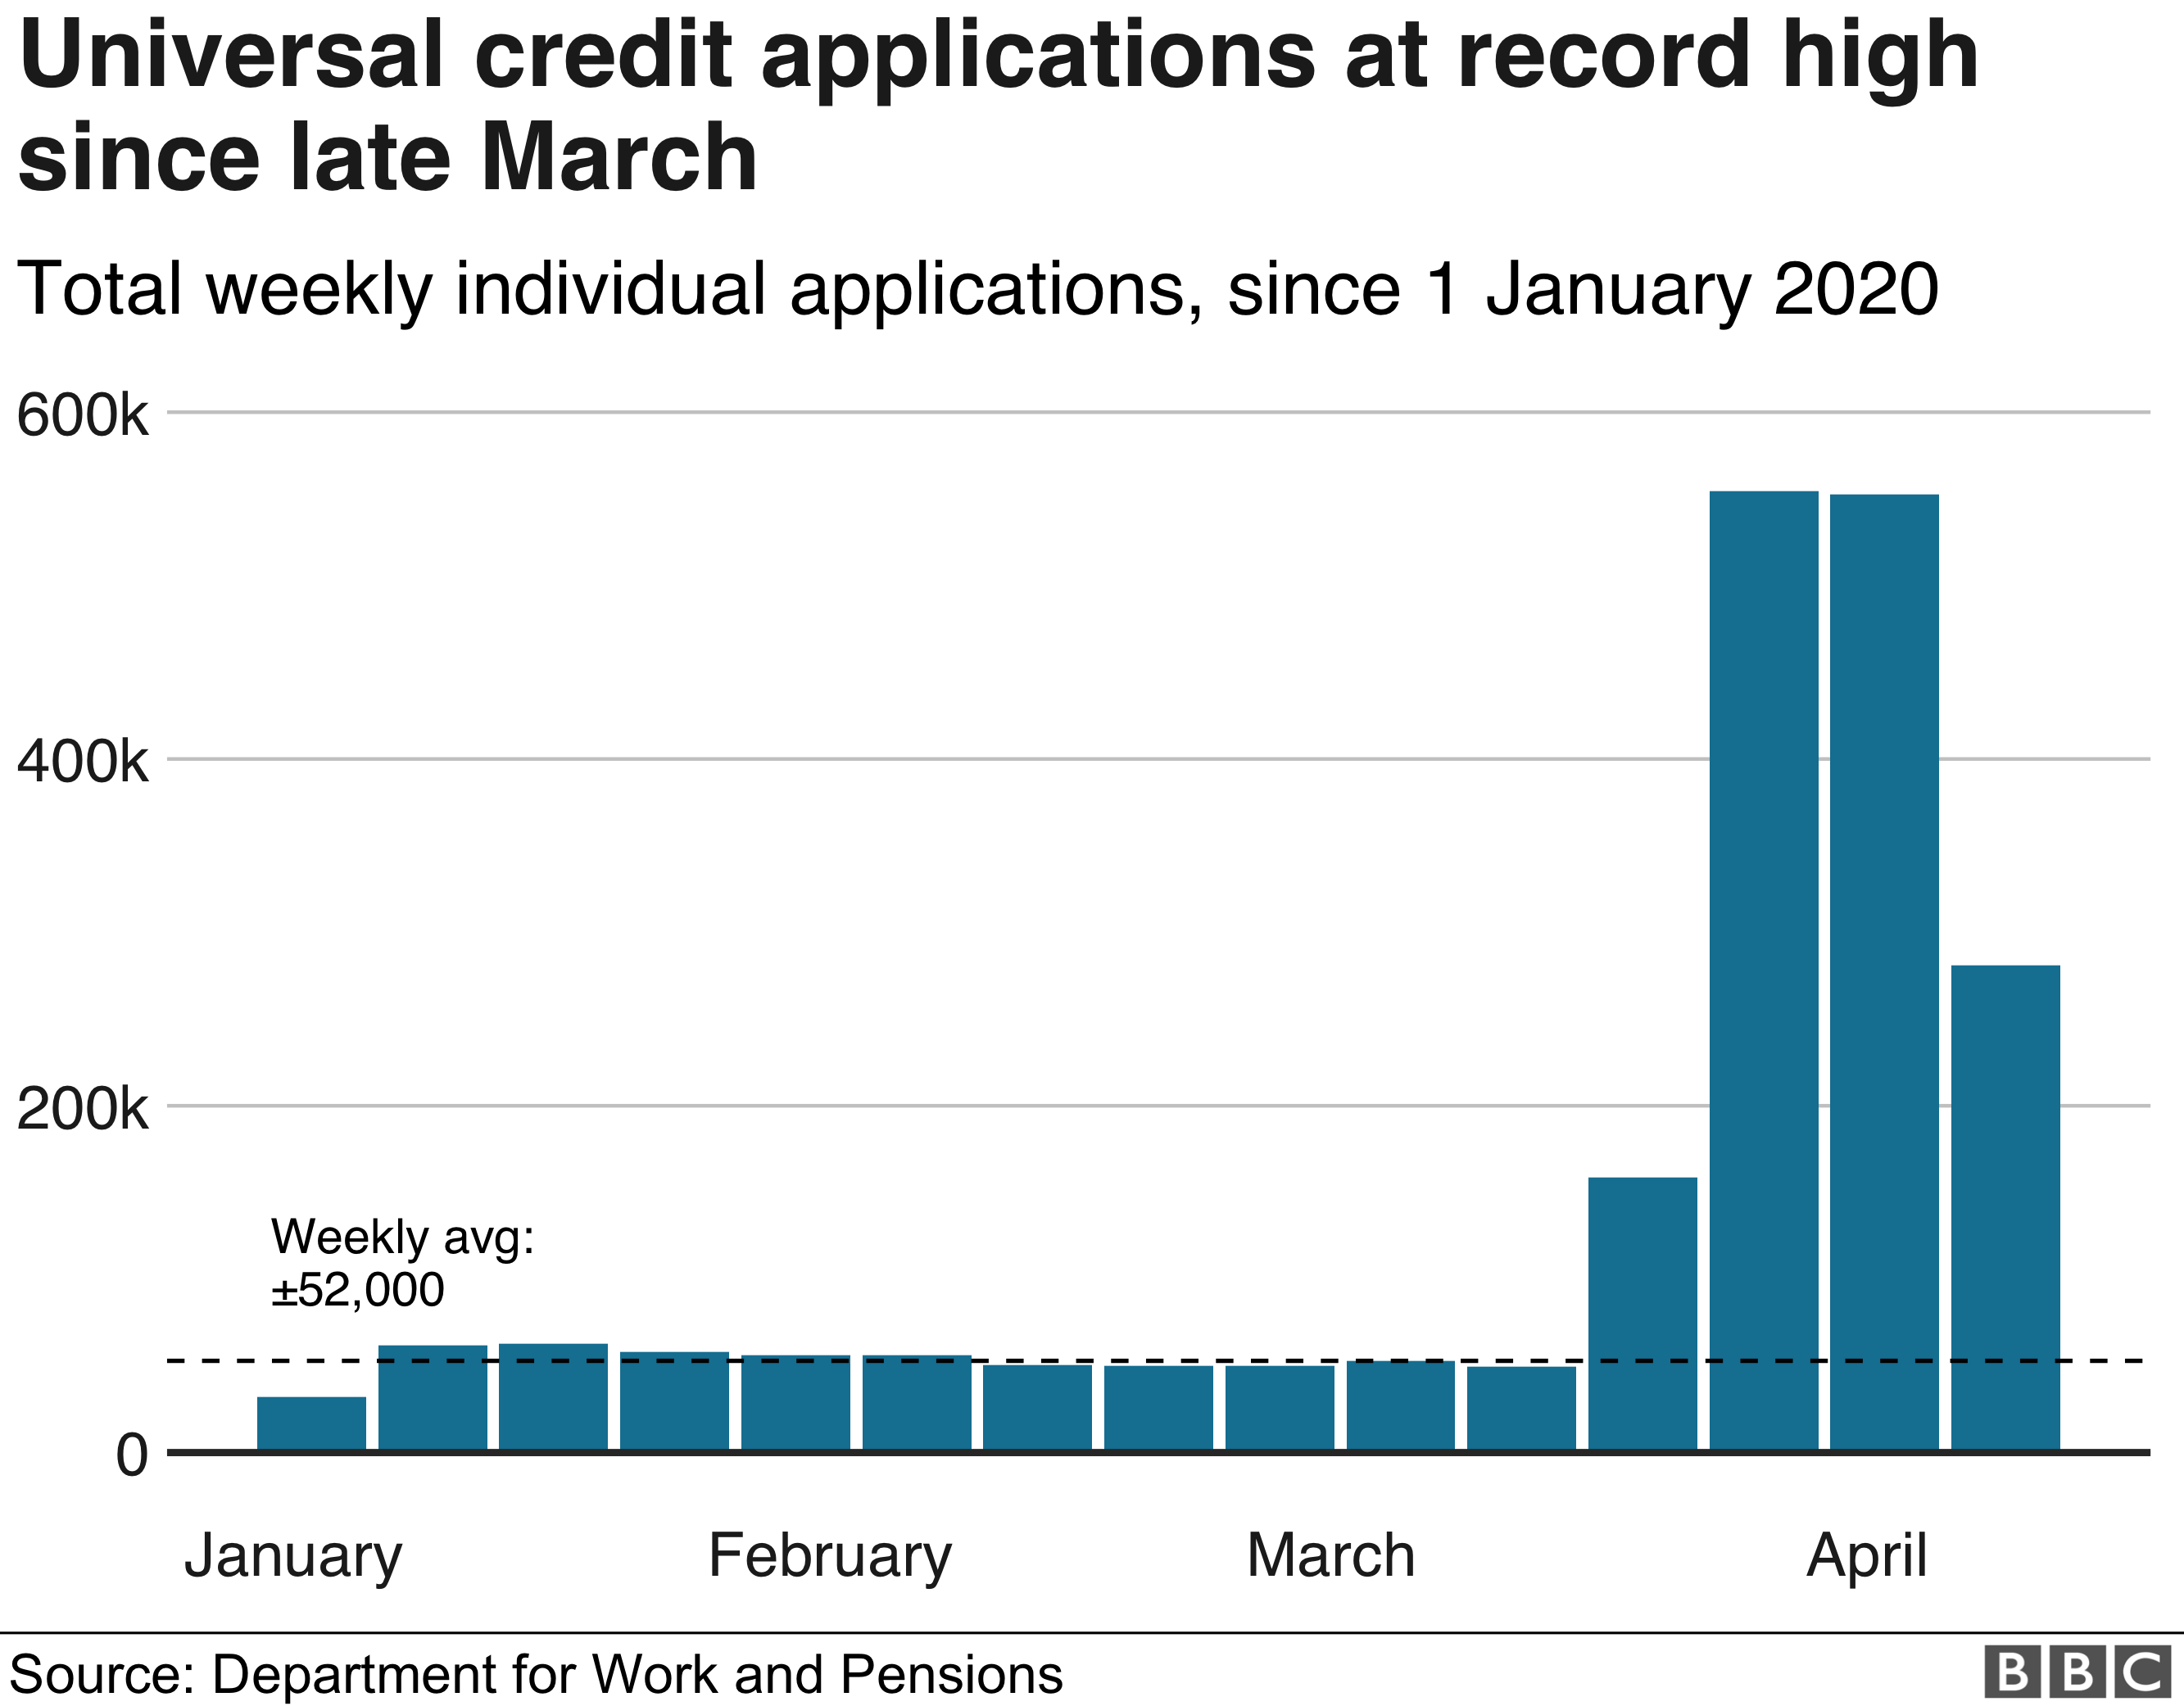 Universal Credit applications reach record high - graphic